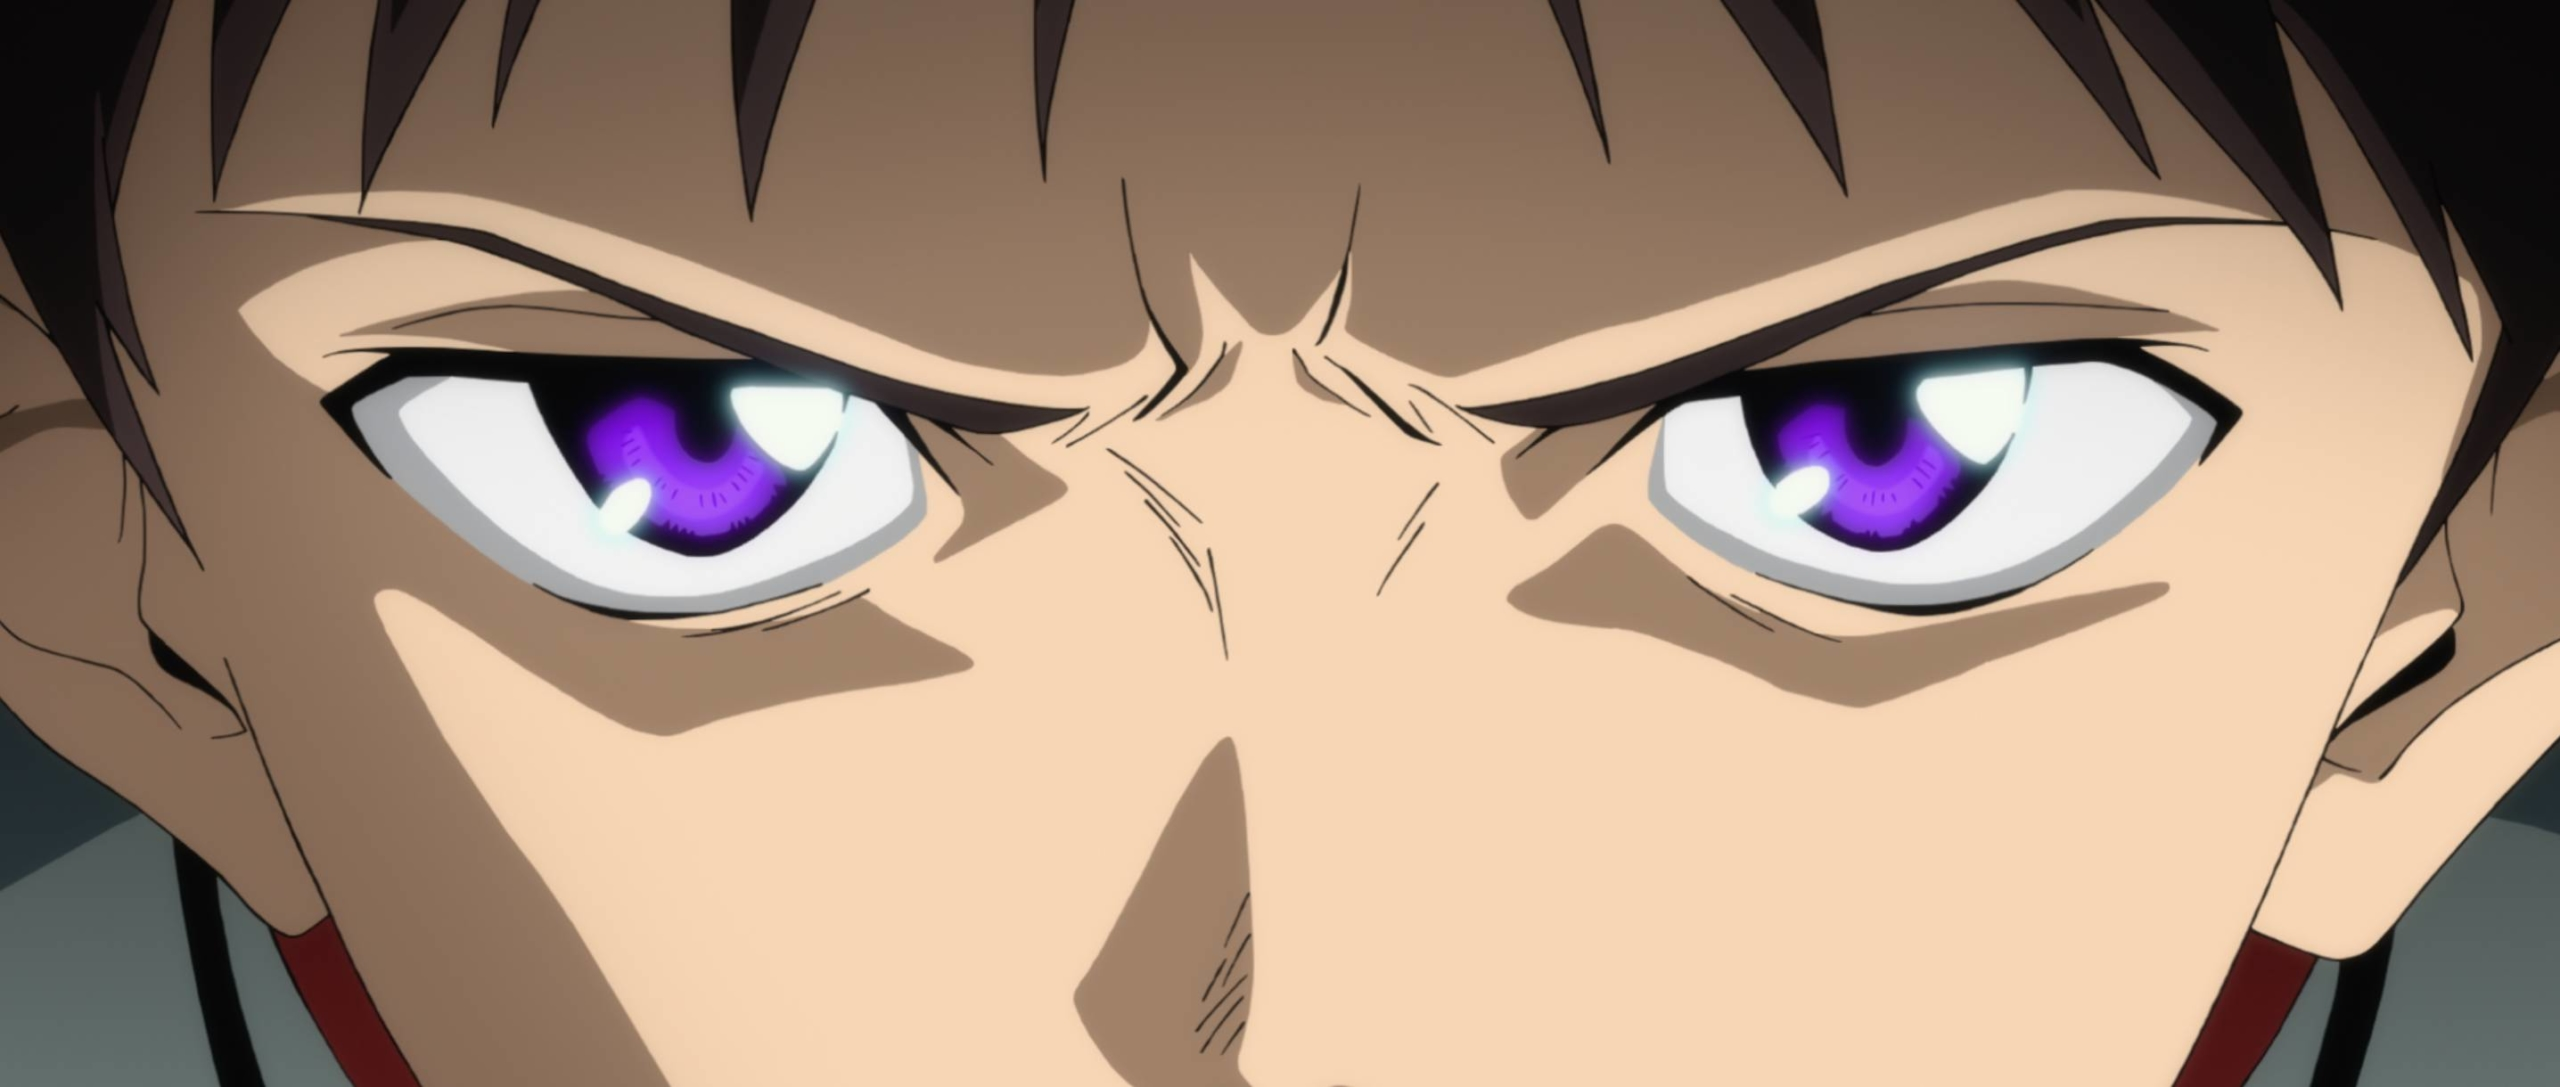 Internal conflict: The psychological and emotional issues that Shinji Ikari, protagonist of the 'Neon Genesis Evangelion' series and films, grapples with give the anime depth and poignancy. | 'EVANGELION:3.0+1.0 THRICE UPON A TIME' © KHARA